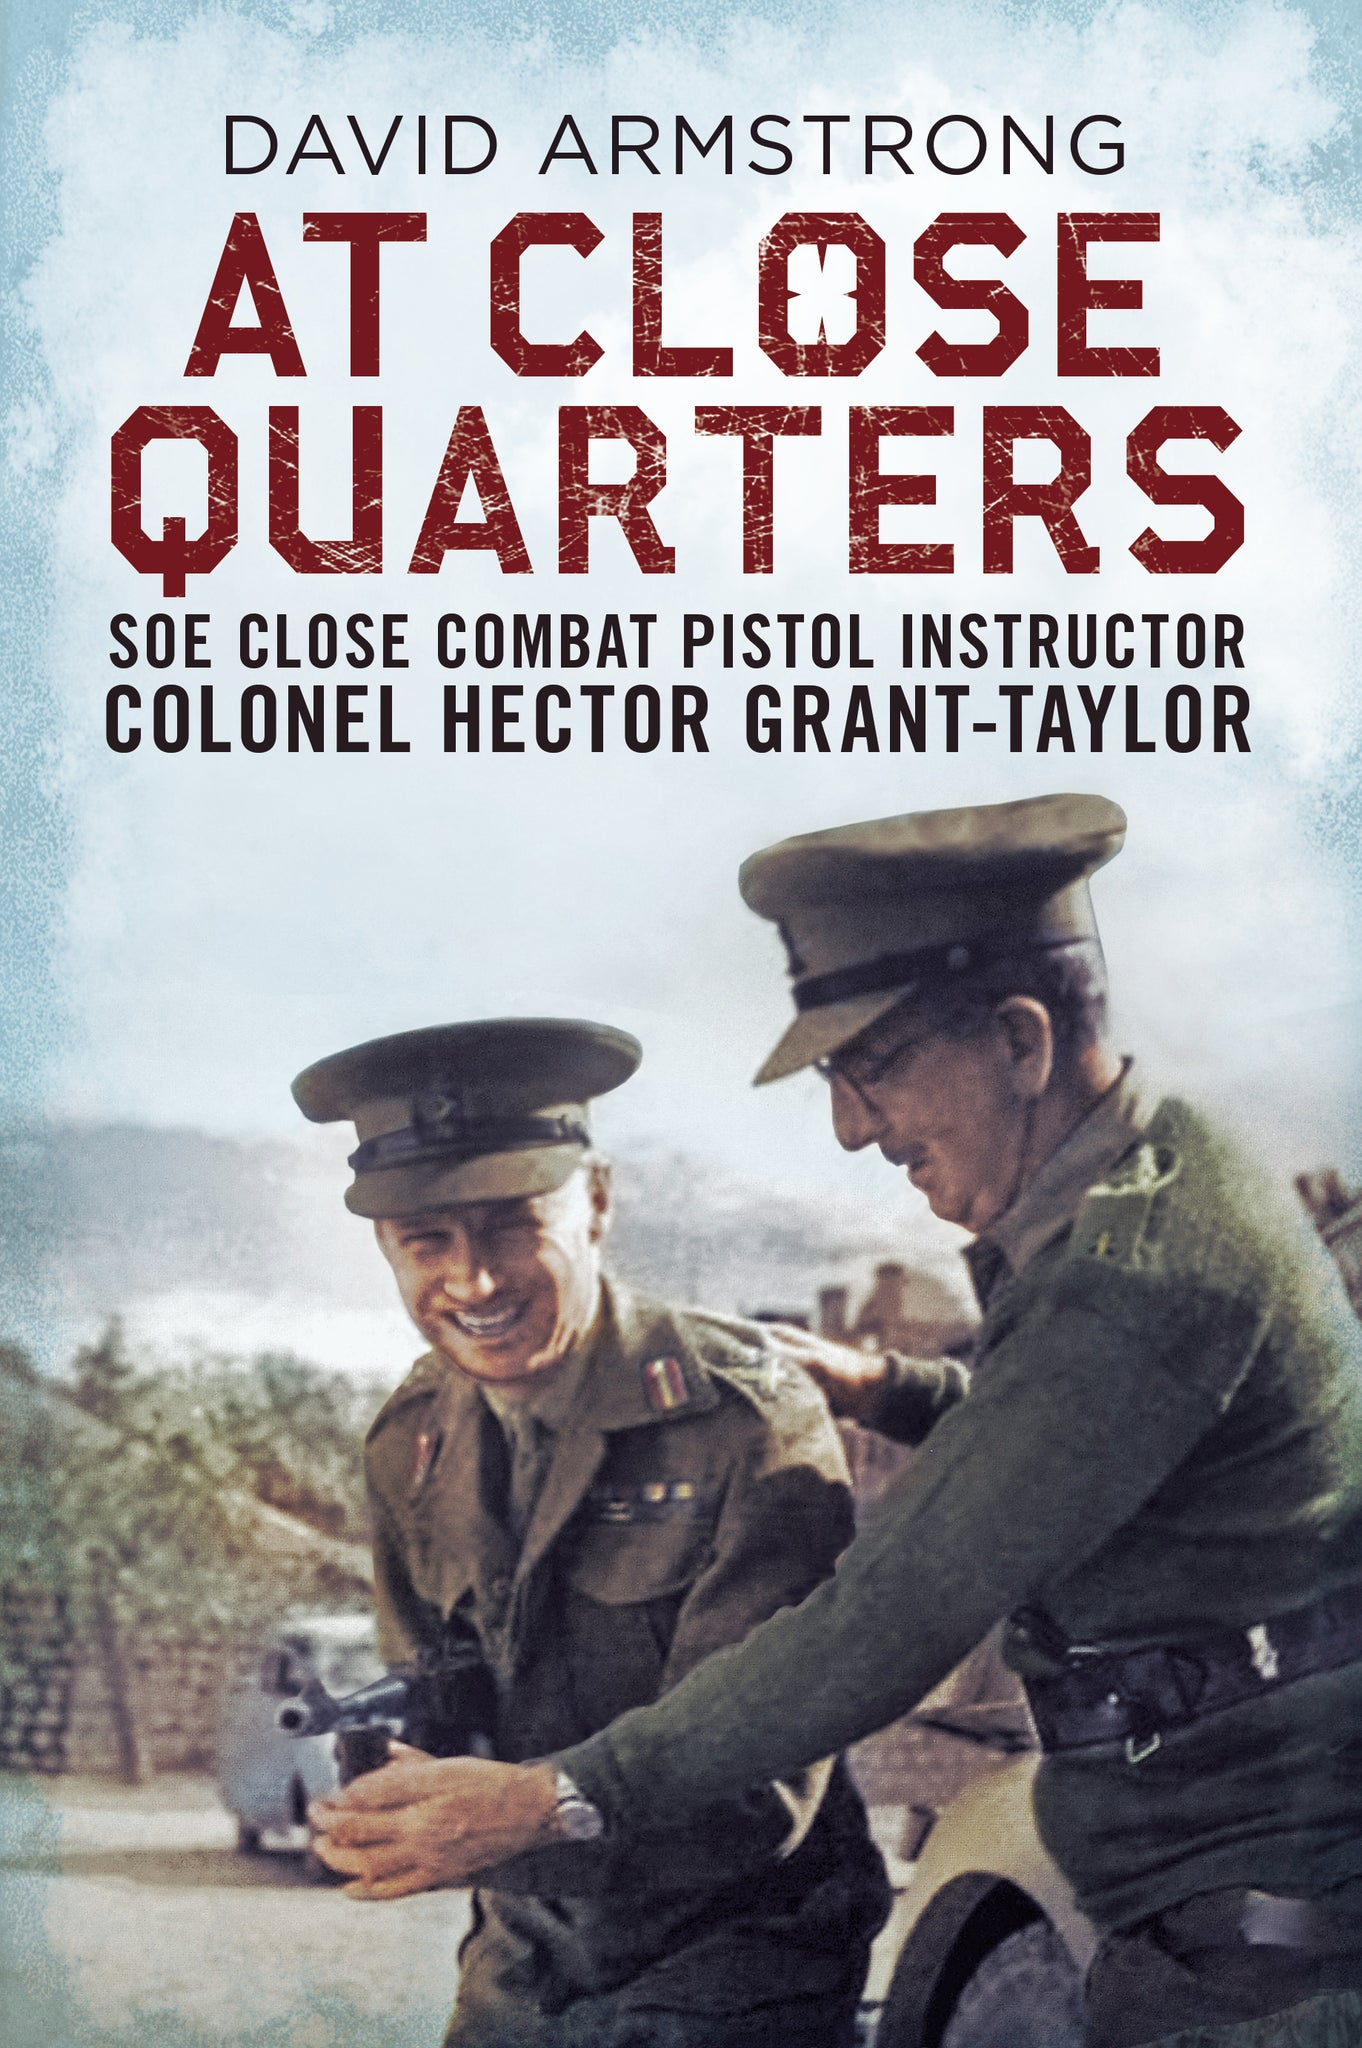 At Close Quarters: SOE Close-Combat Pistol Instructor Colonel Hector Grant-Taylor - available now from Fonthill Media